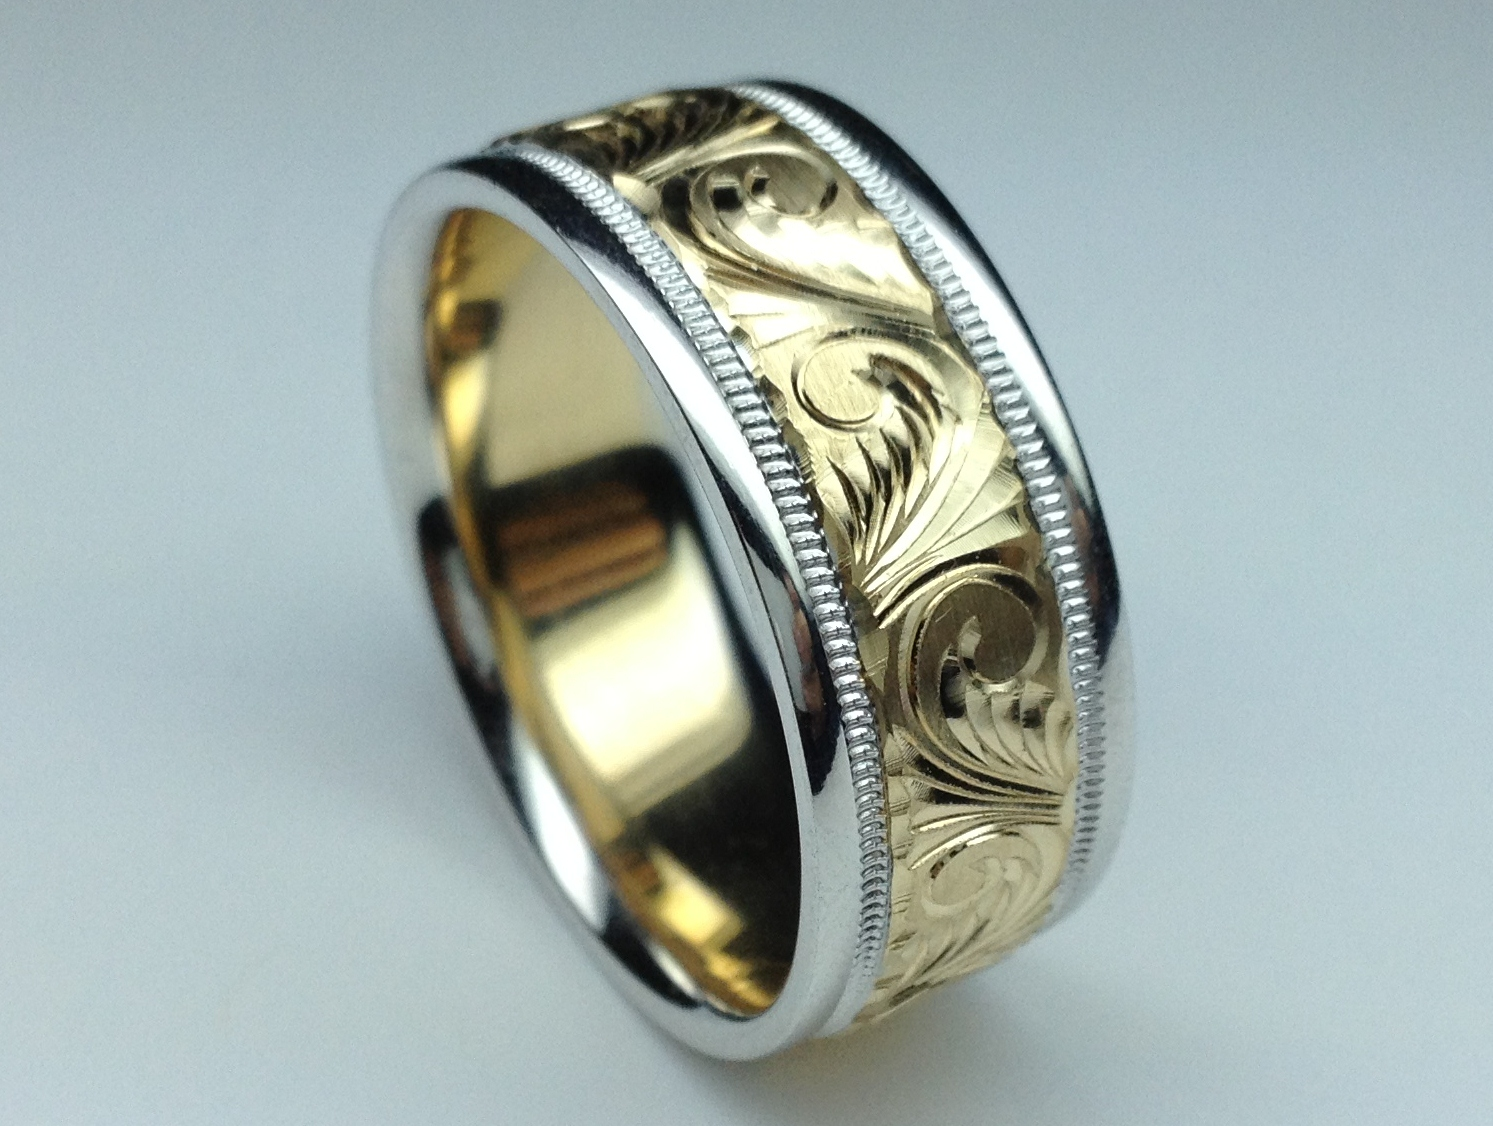 Two-Tone 14K White & Yellow Gold 8 mm Men's Engraved Milligrained Wedding Band